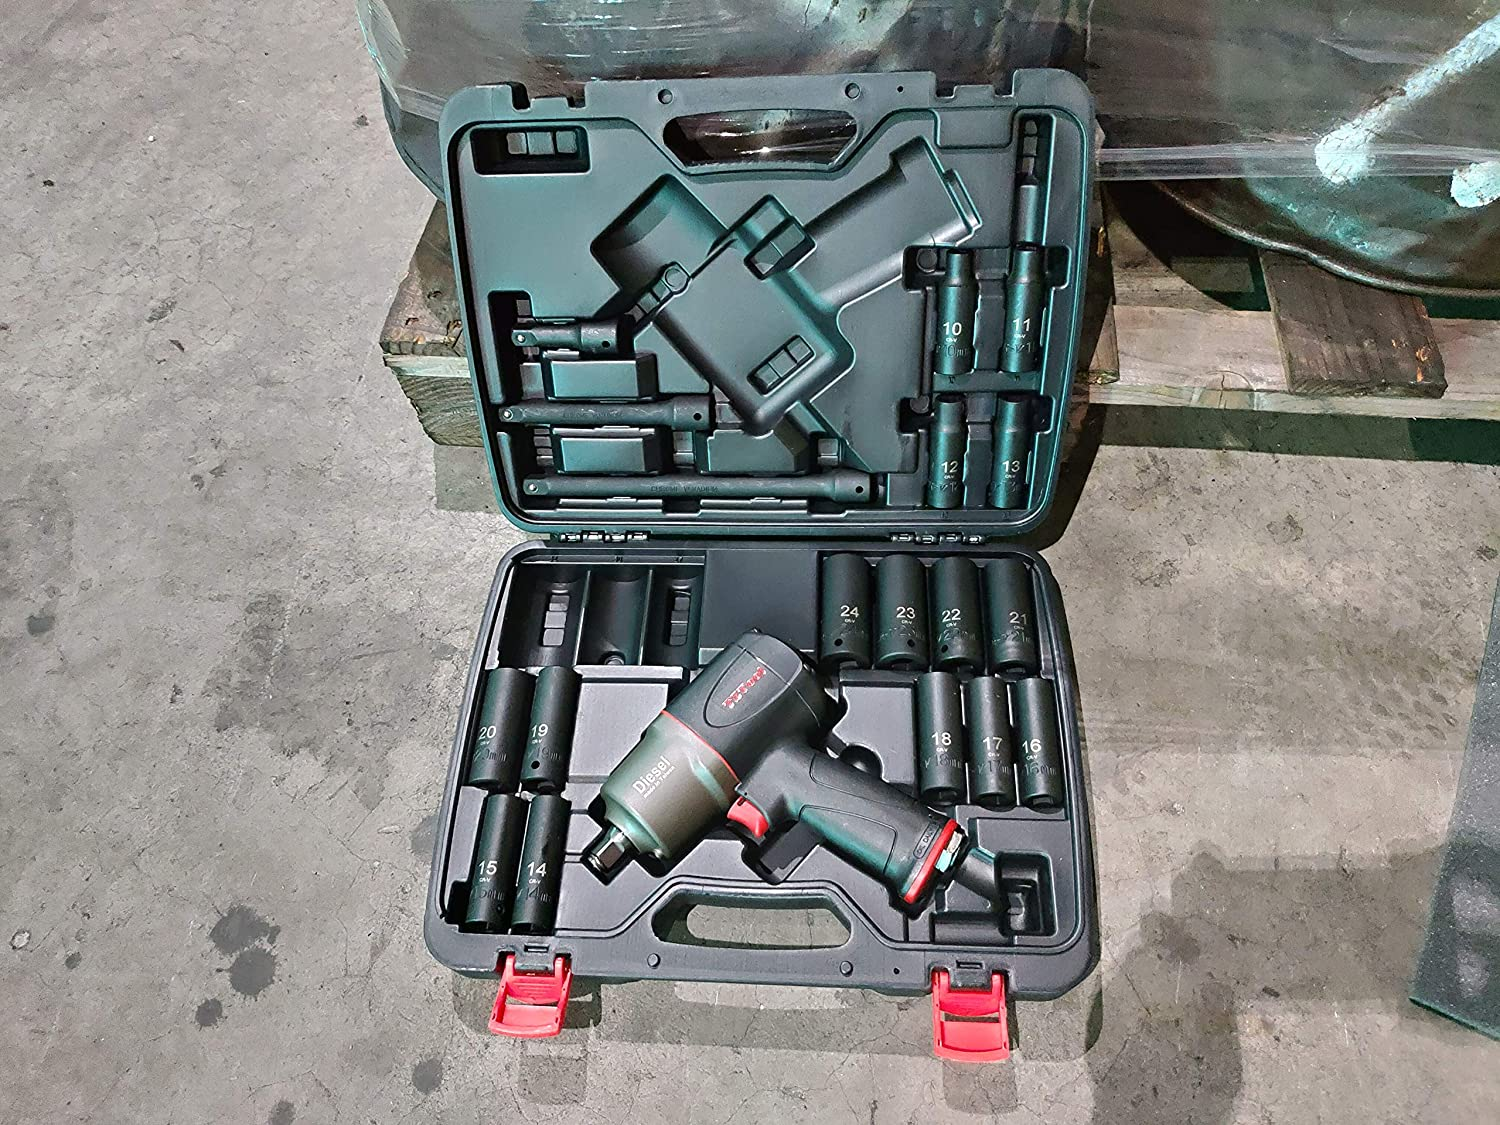 mm size sockets TZTool 1200 All new Diesel 1//2 Air Impact wrench kit